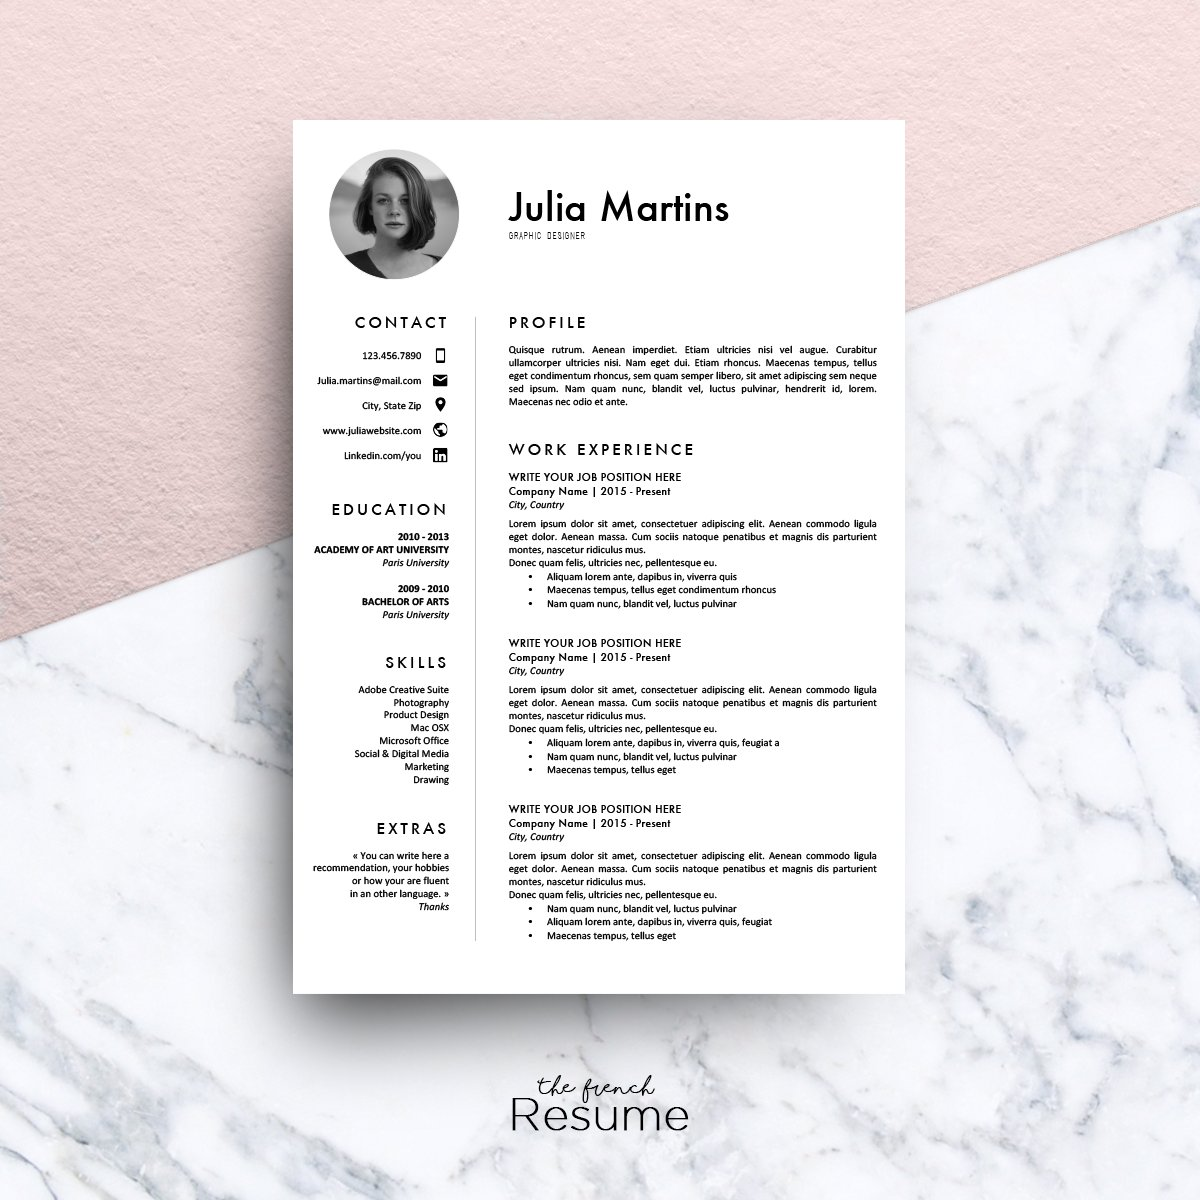 Resume Template Ms Word Julia Resume Templates Creative Market - Resume-template-microsoft-word-mac